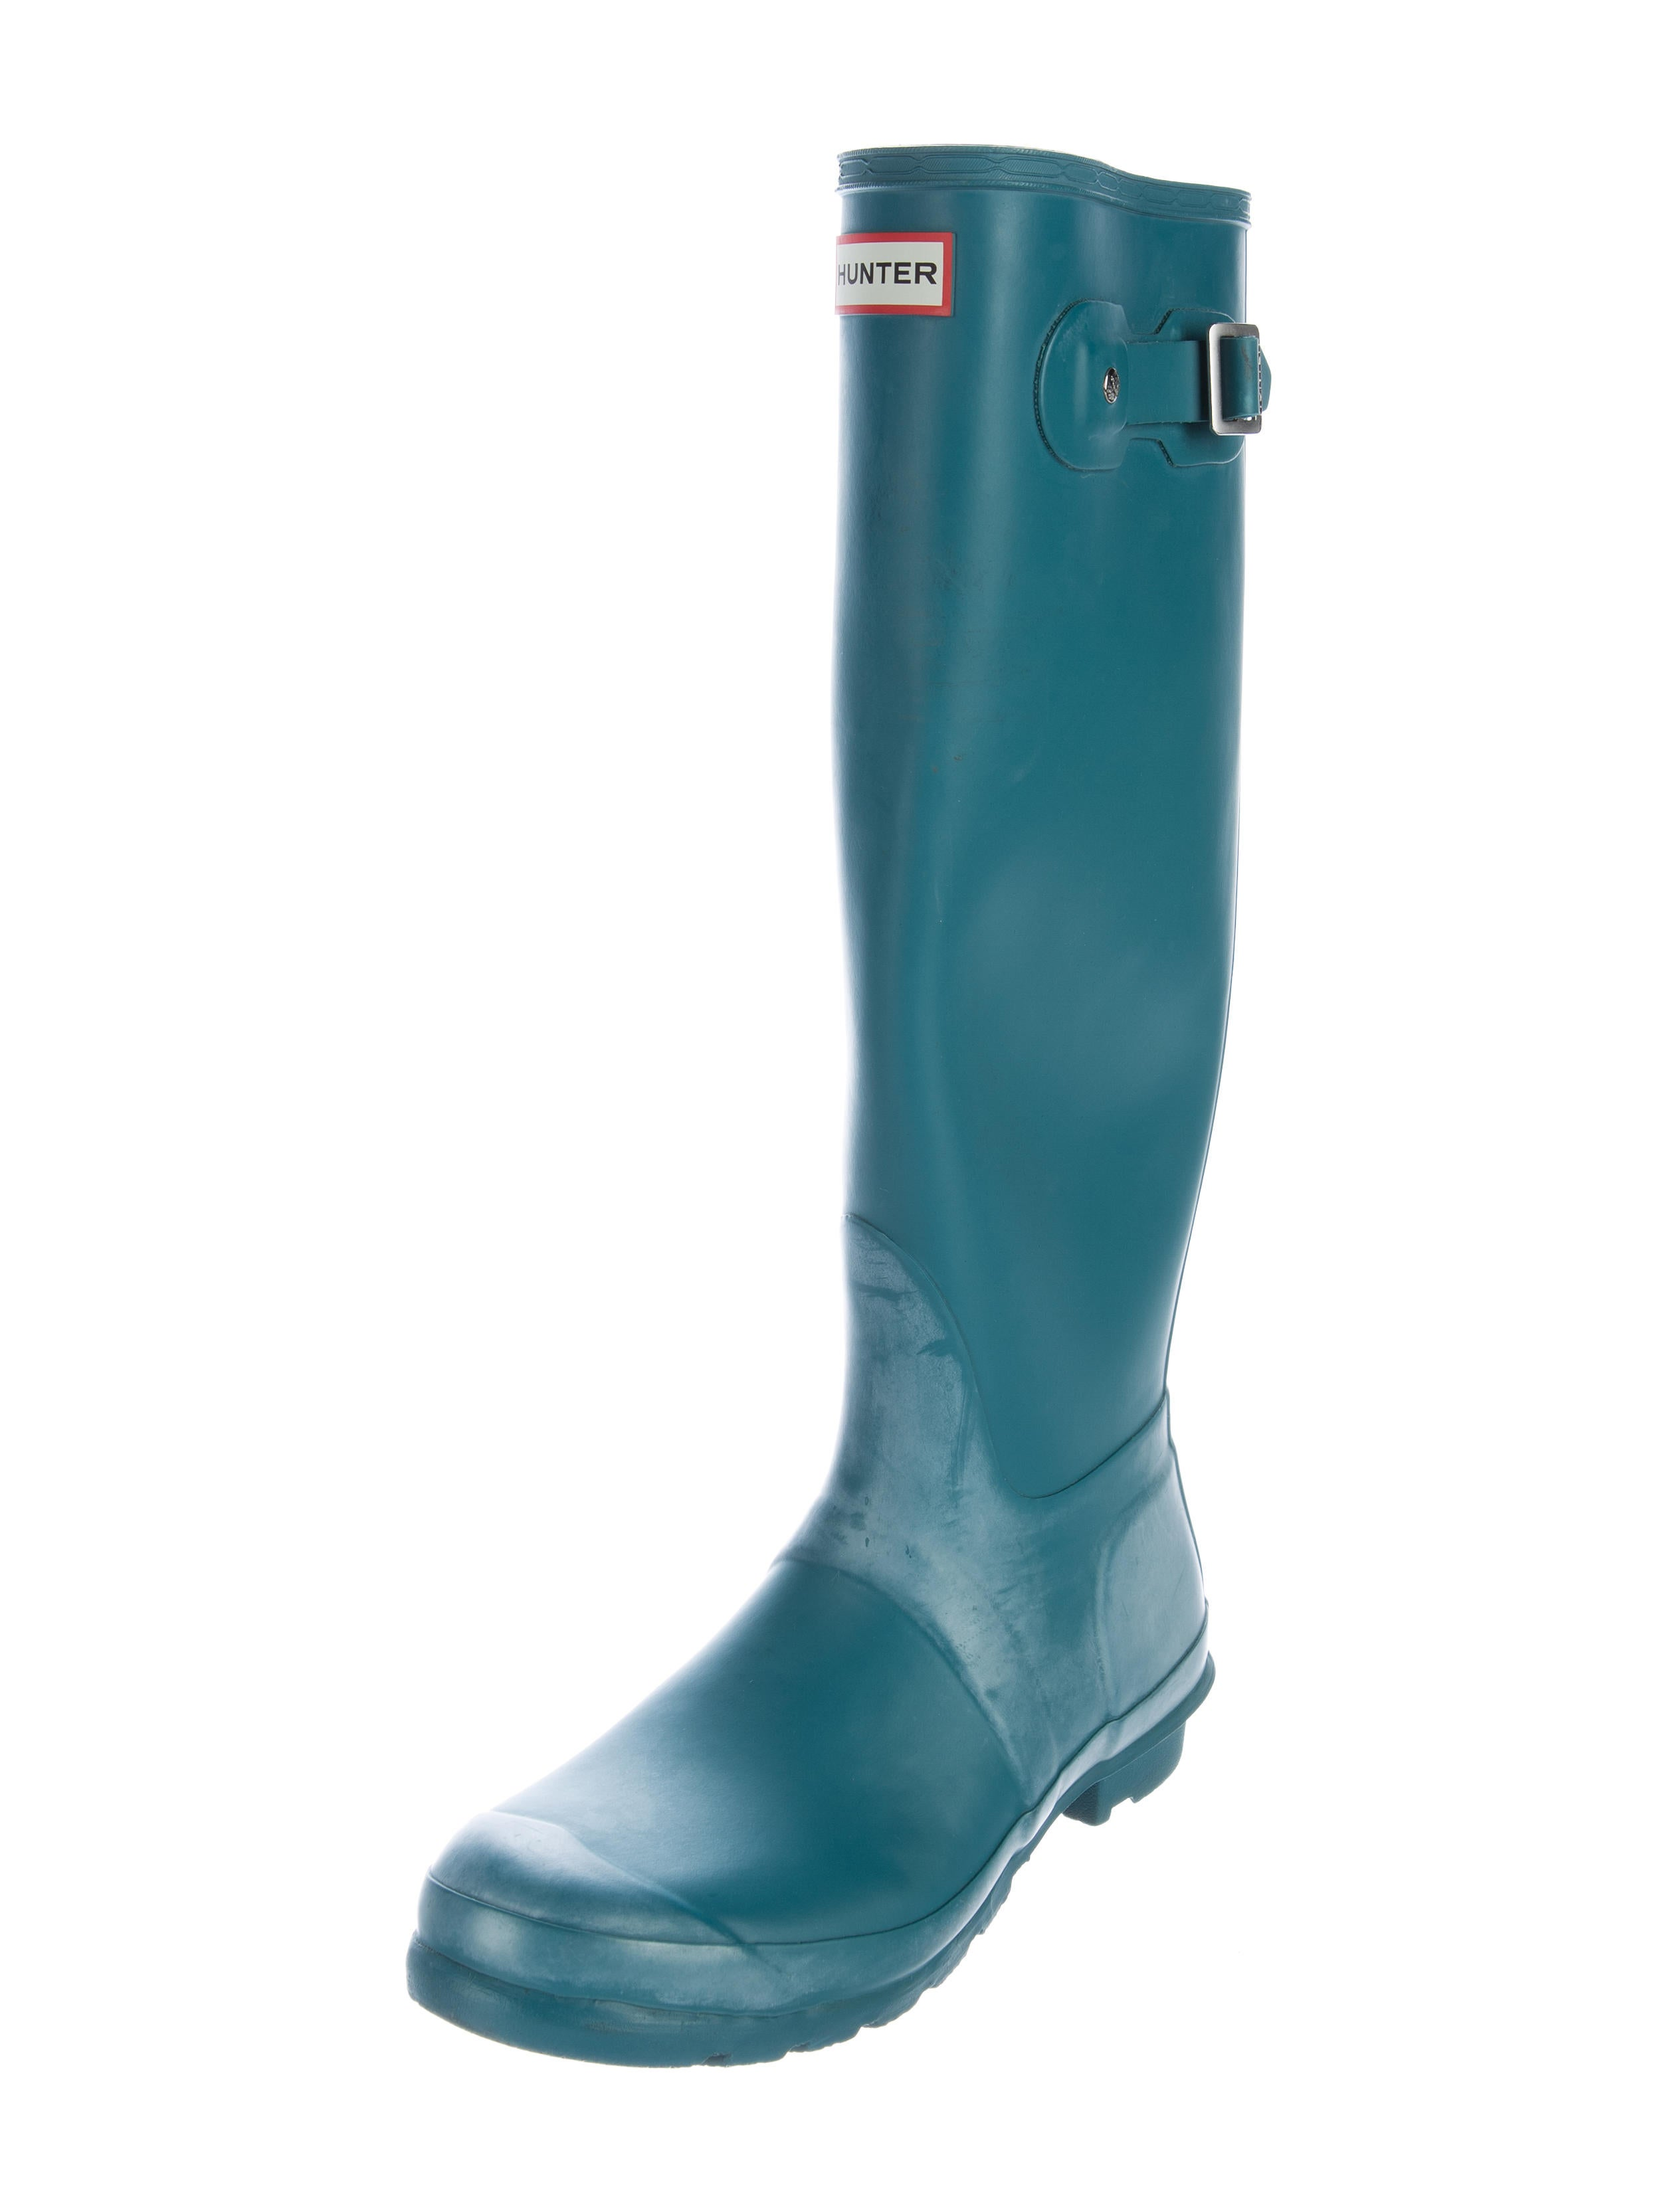 Capelli New York Ladies Shiny Tall Rubber Rain Boots. by Capelli New York. $ - $ $ 24 $ 36 95 Prime. FREE Shipping on eligible orders. Some sizes/colors are Prime eligible. in style with our Capelli New York rain boots. Our fashionable rain Capelli New York Ladies Shiny Solid Opaque Jelly Rain Boot. by Capelli New York.